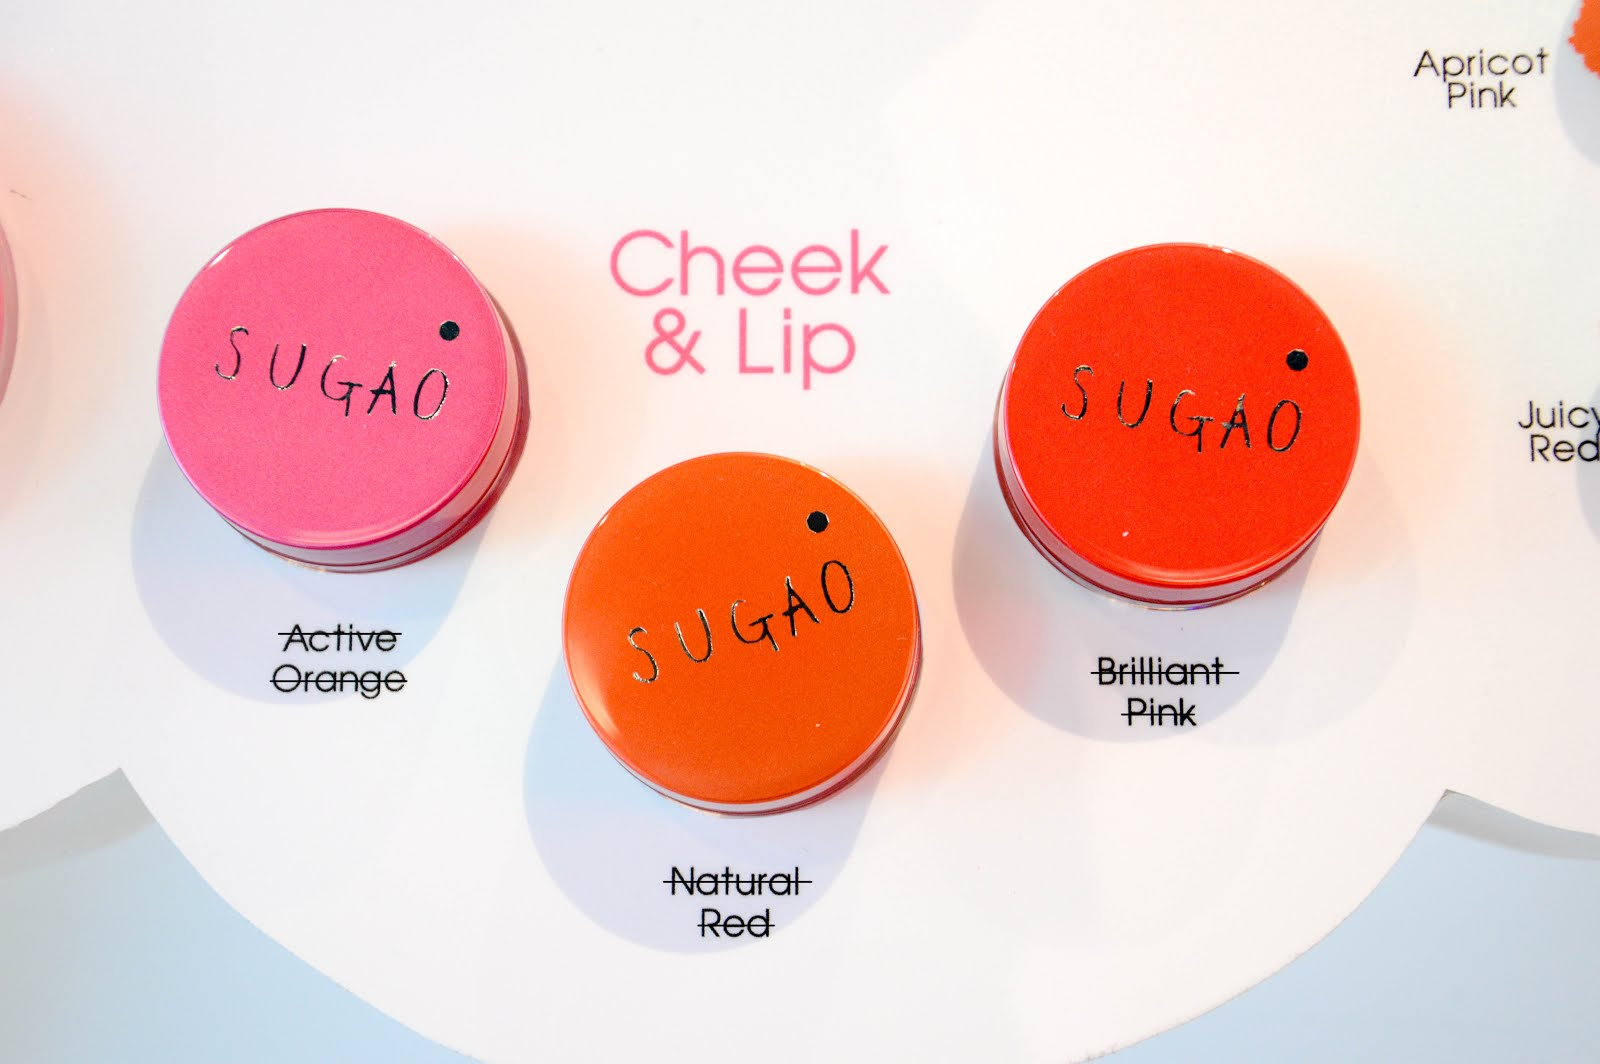 sugao cheek and lip review